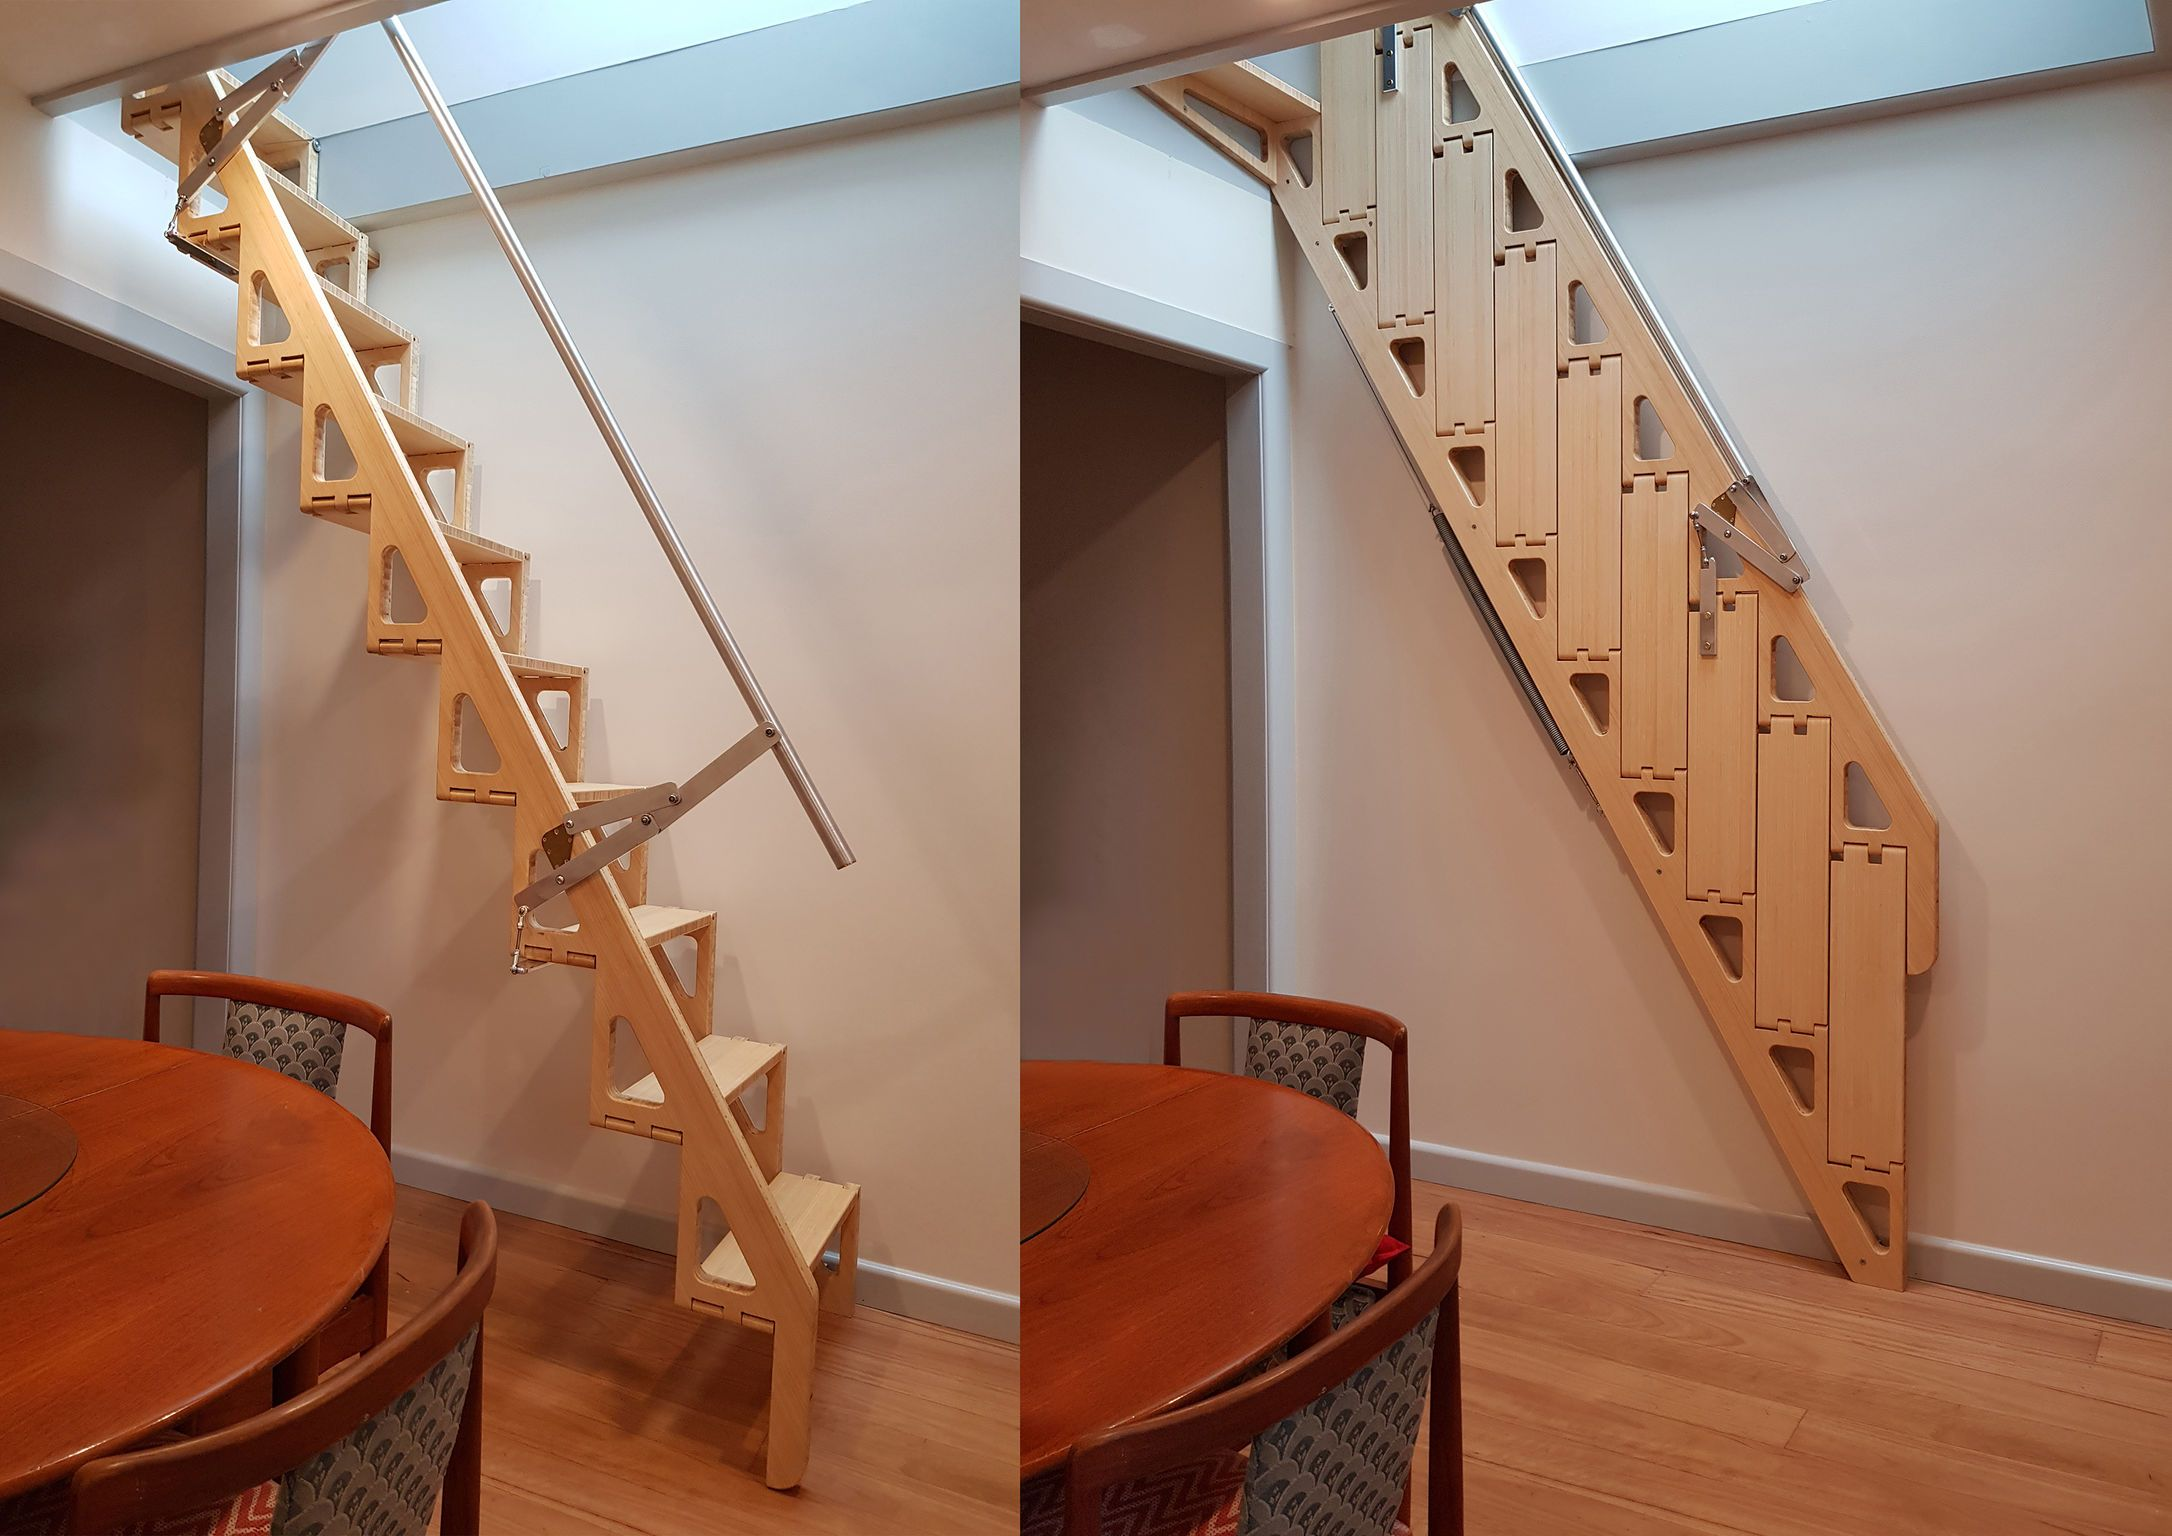 Bcompact Hybrid Stairs Ladders If World Design Guide In 2020